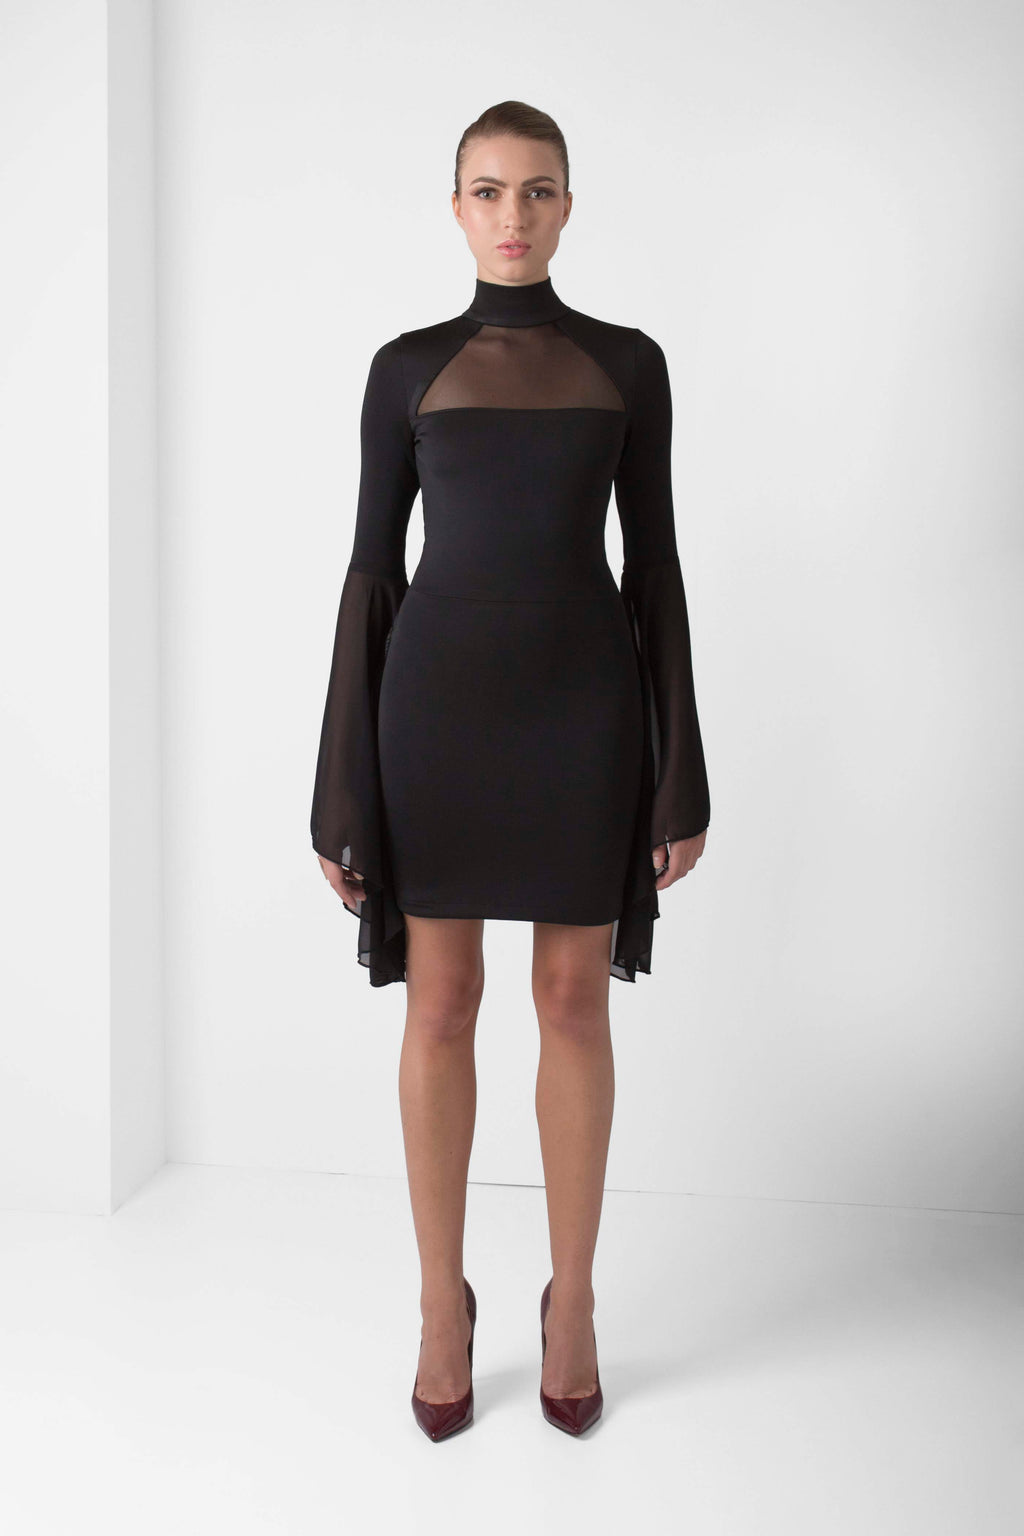 Black Bell Sleeve Mini Dress - pacorogiene